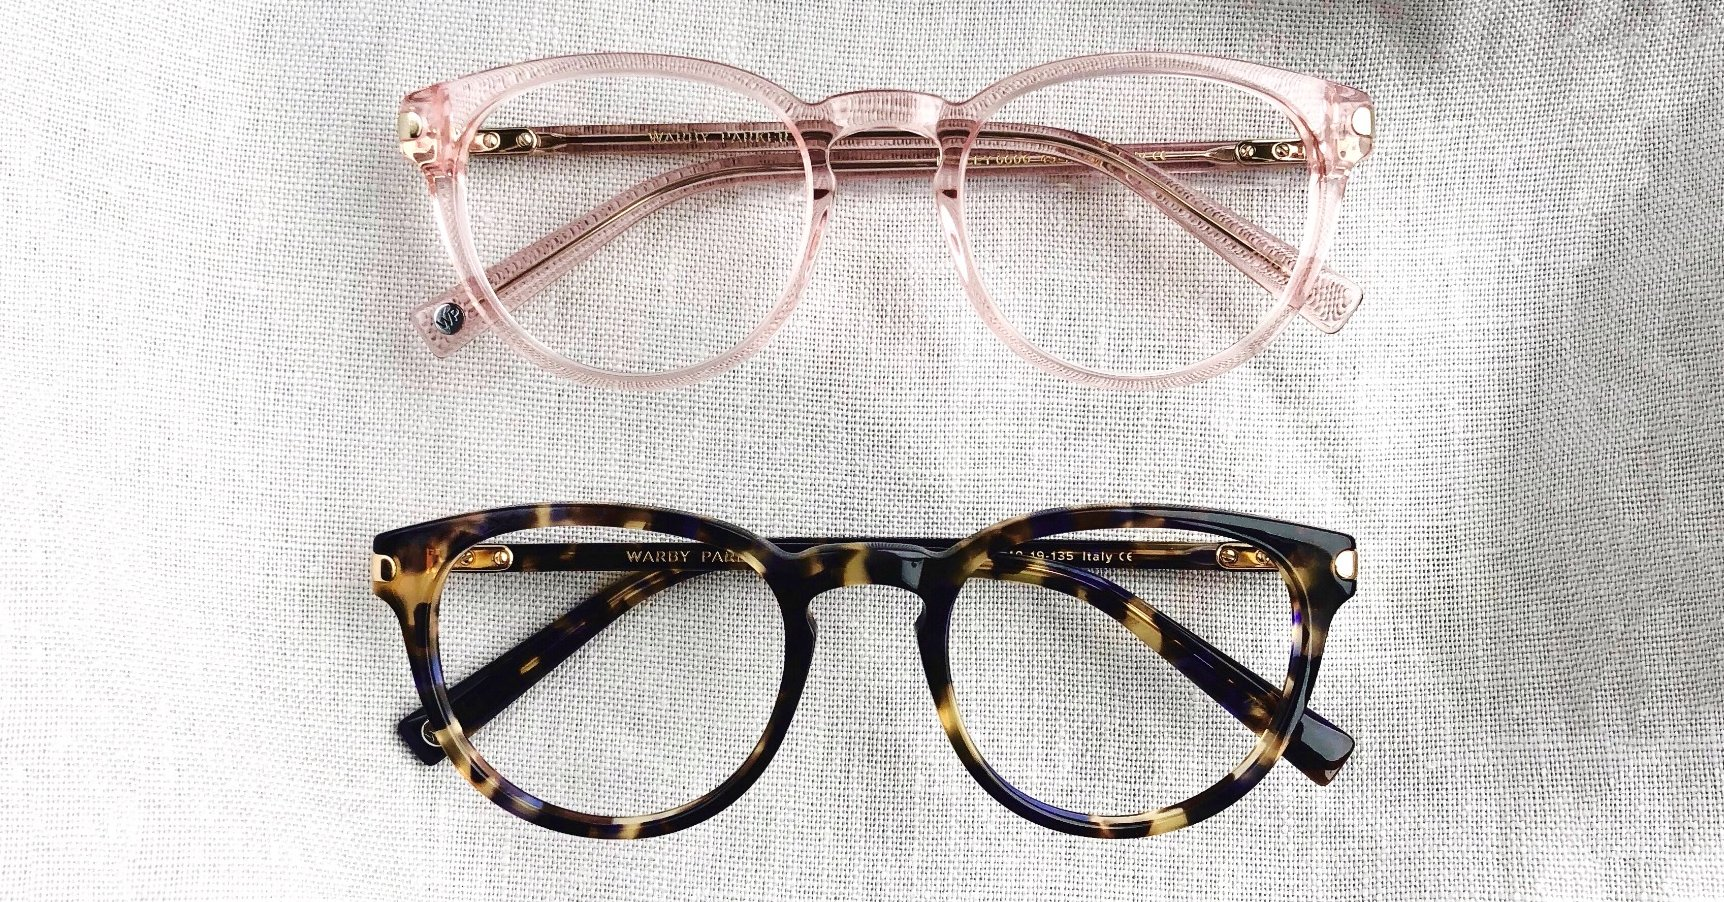 fb07622e37 Warby Parker on Twitter